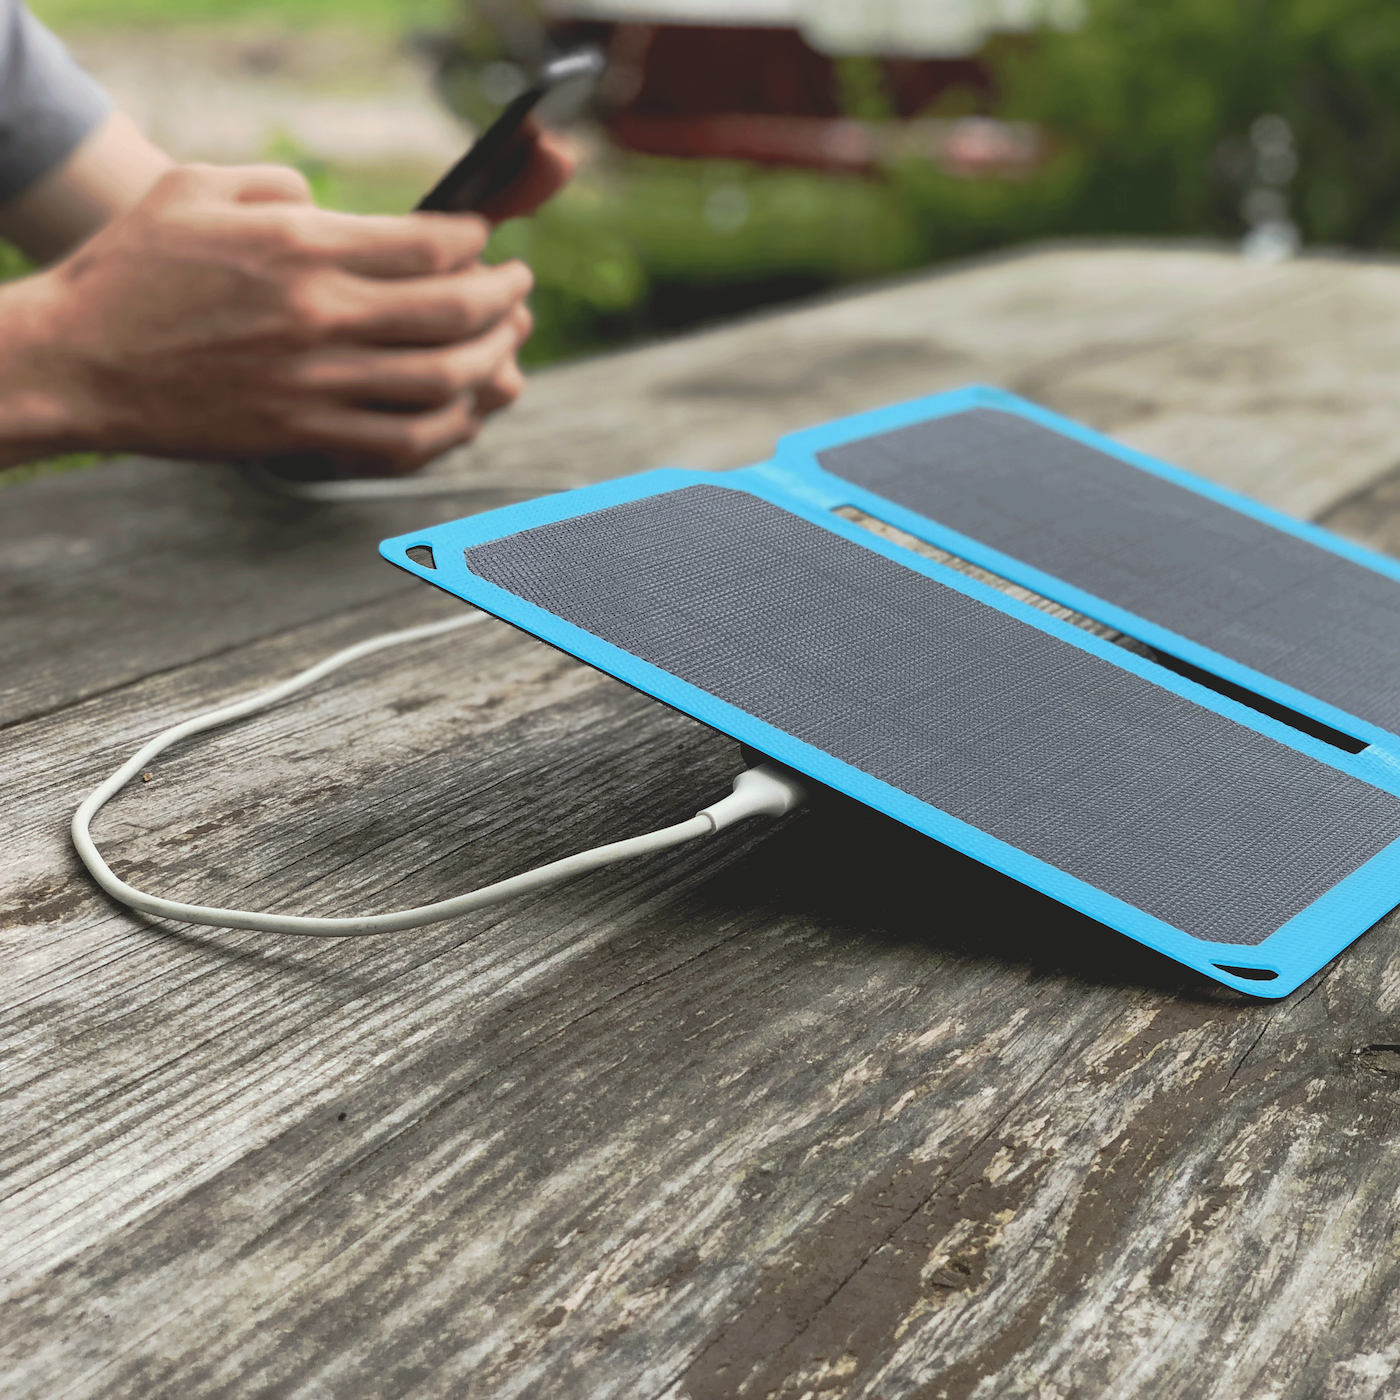 solar phone charger charges a phone